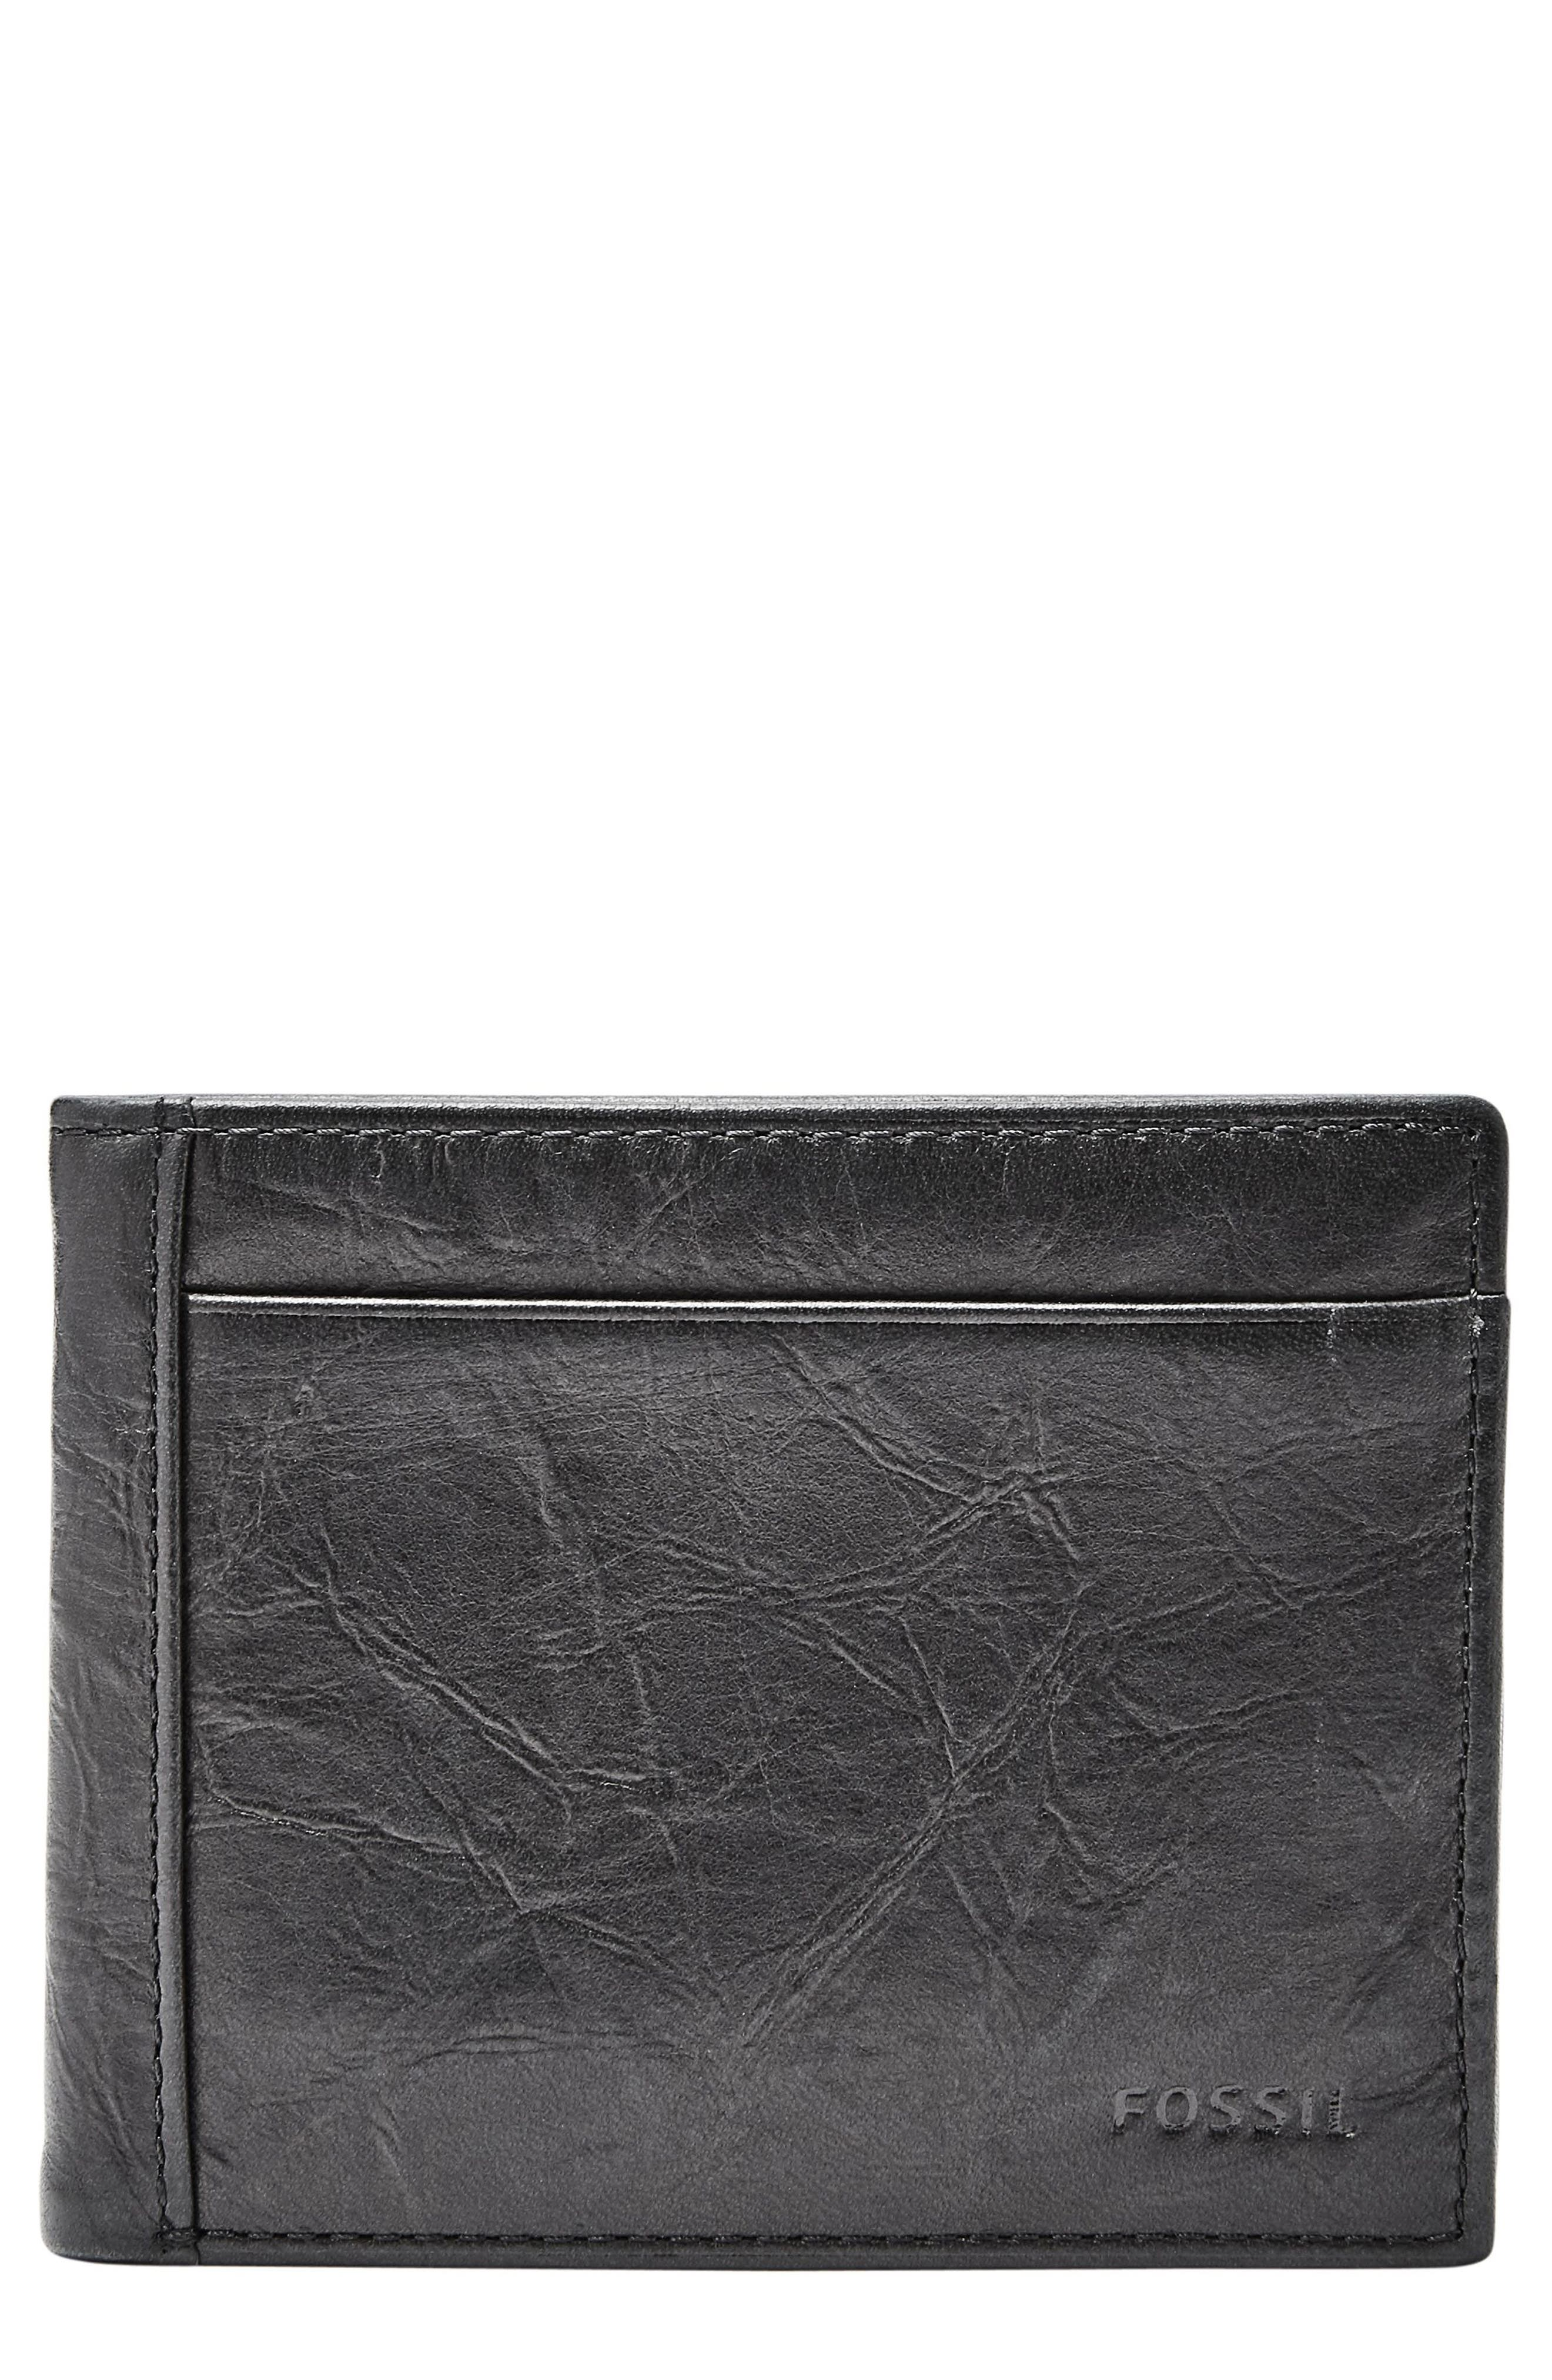 Alternate Image 1 Selected - Fossil Leather Wallet